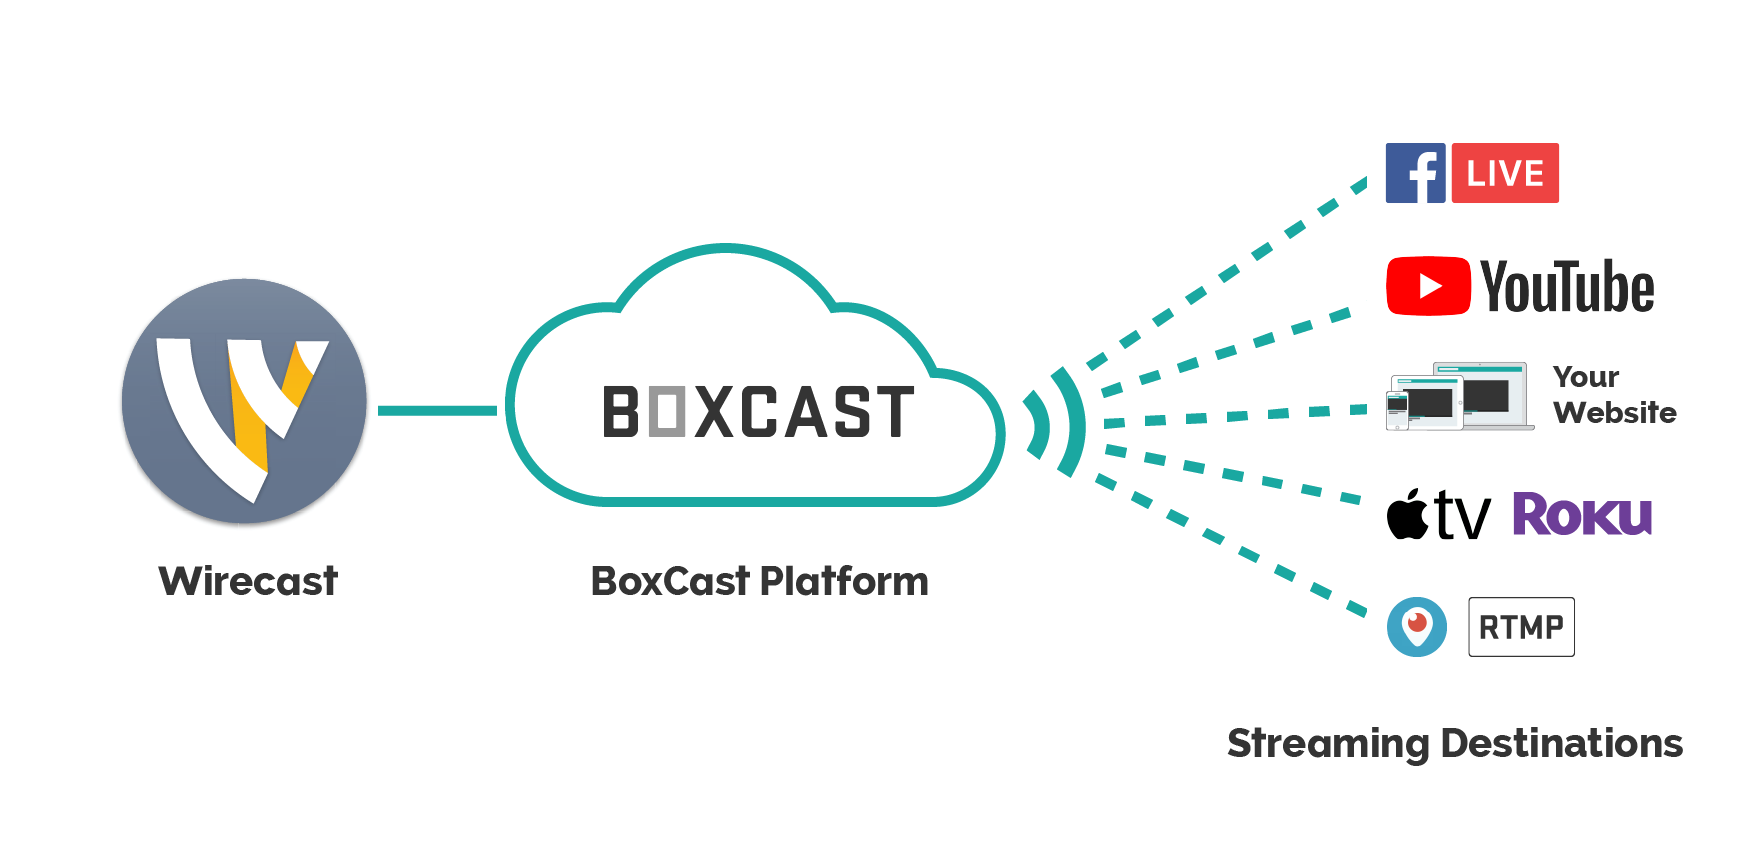 BoxCast_Wirecast_Workflow